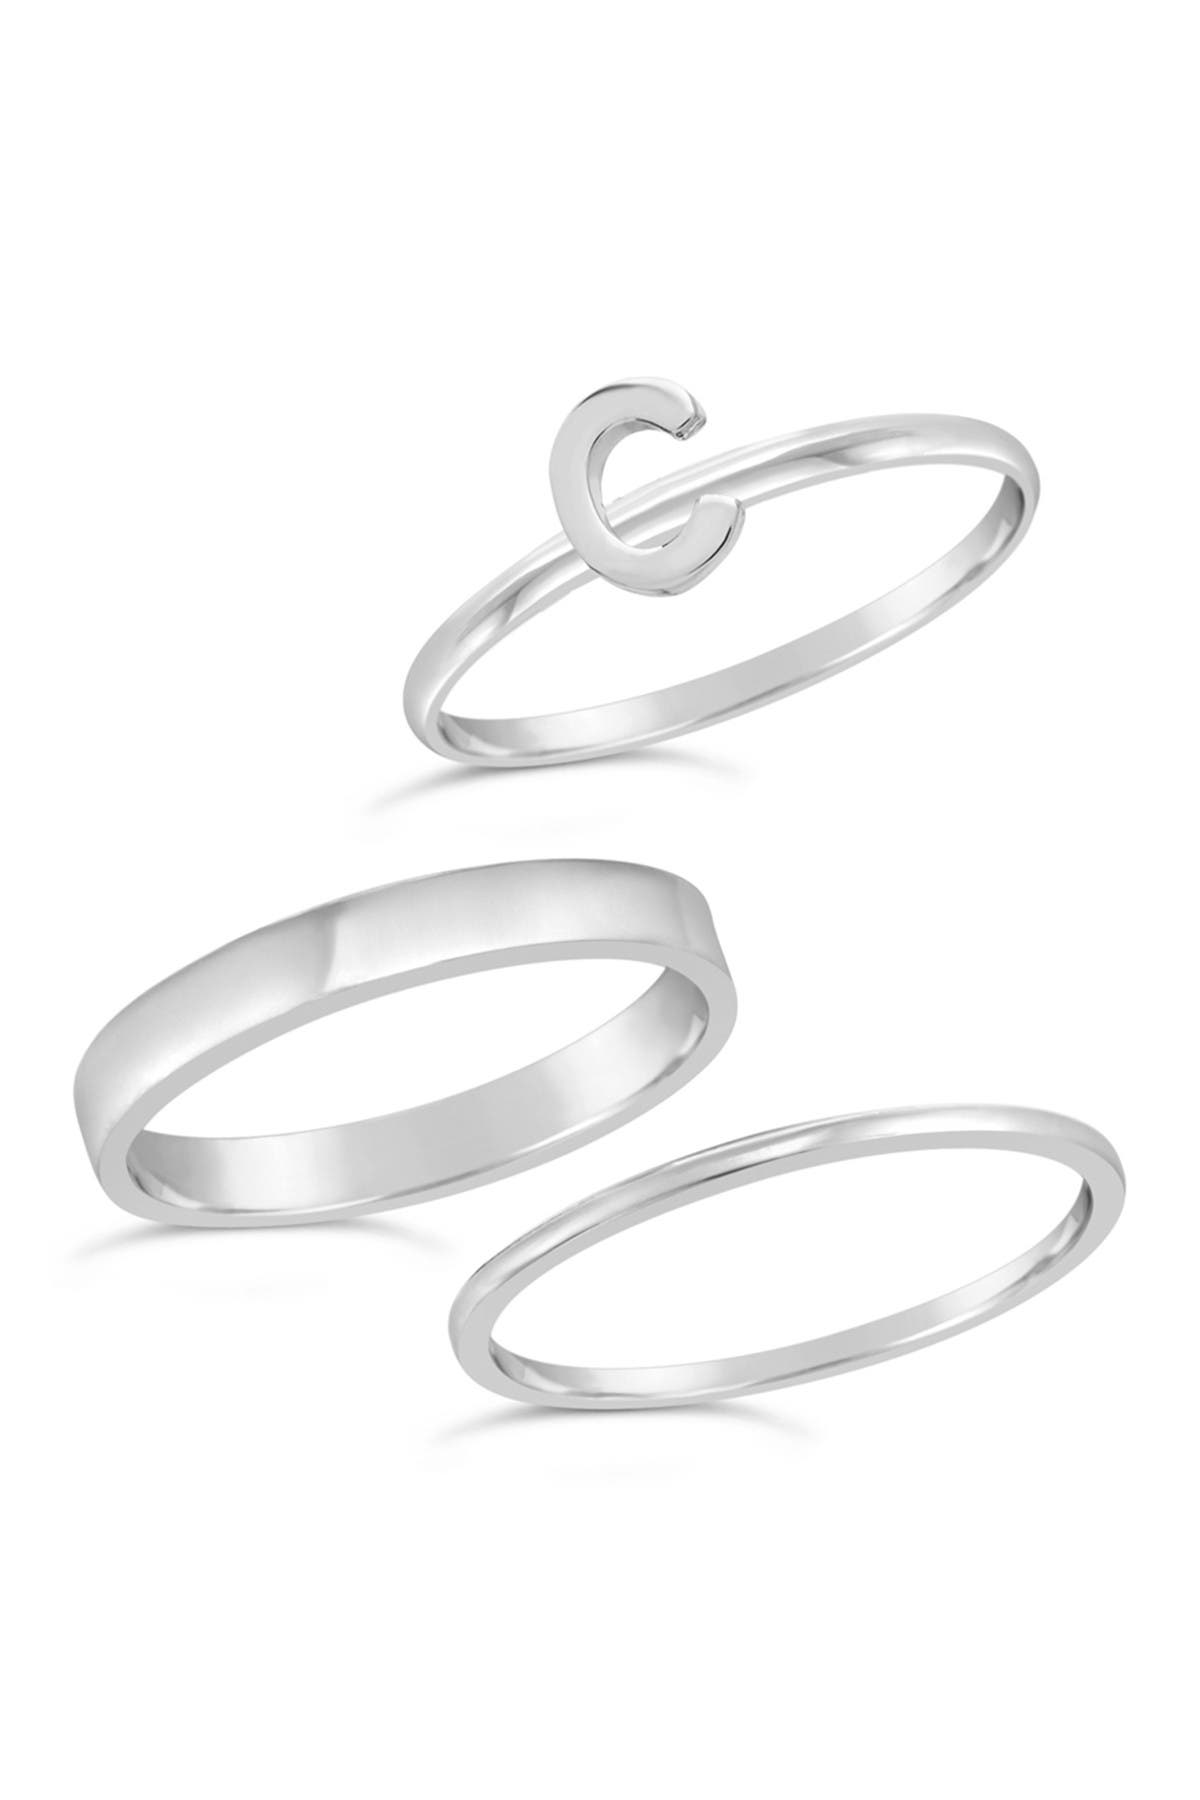 Image of Sterling Forever Sterling Silver Initial Ring - Set of 3 - C